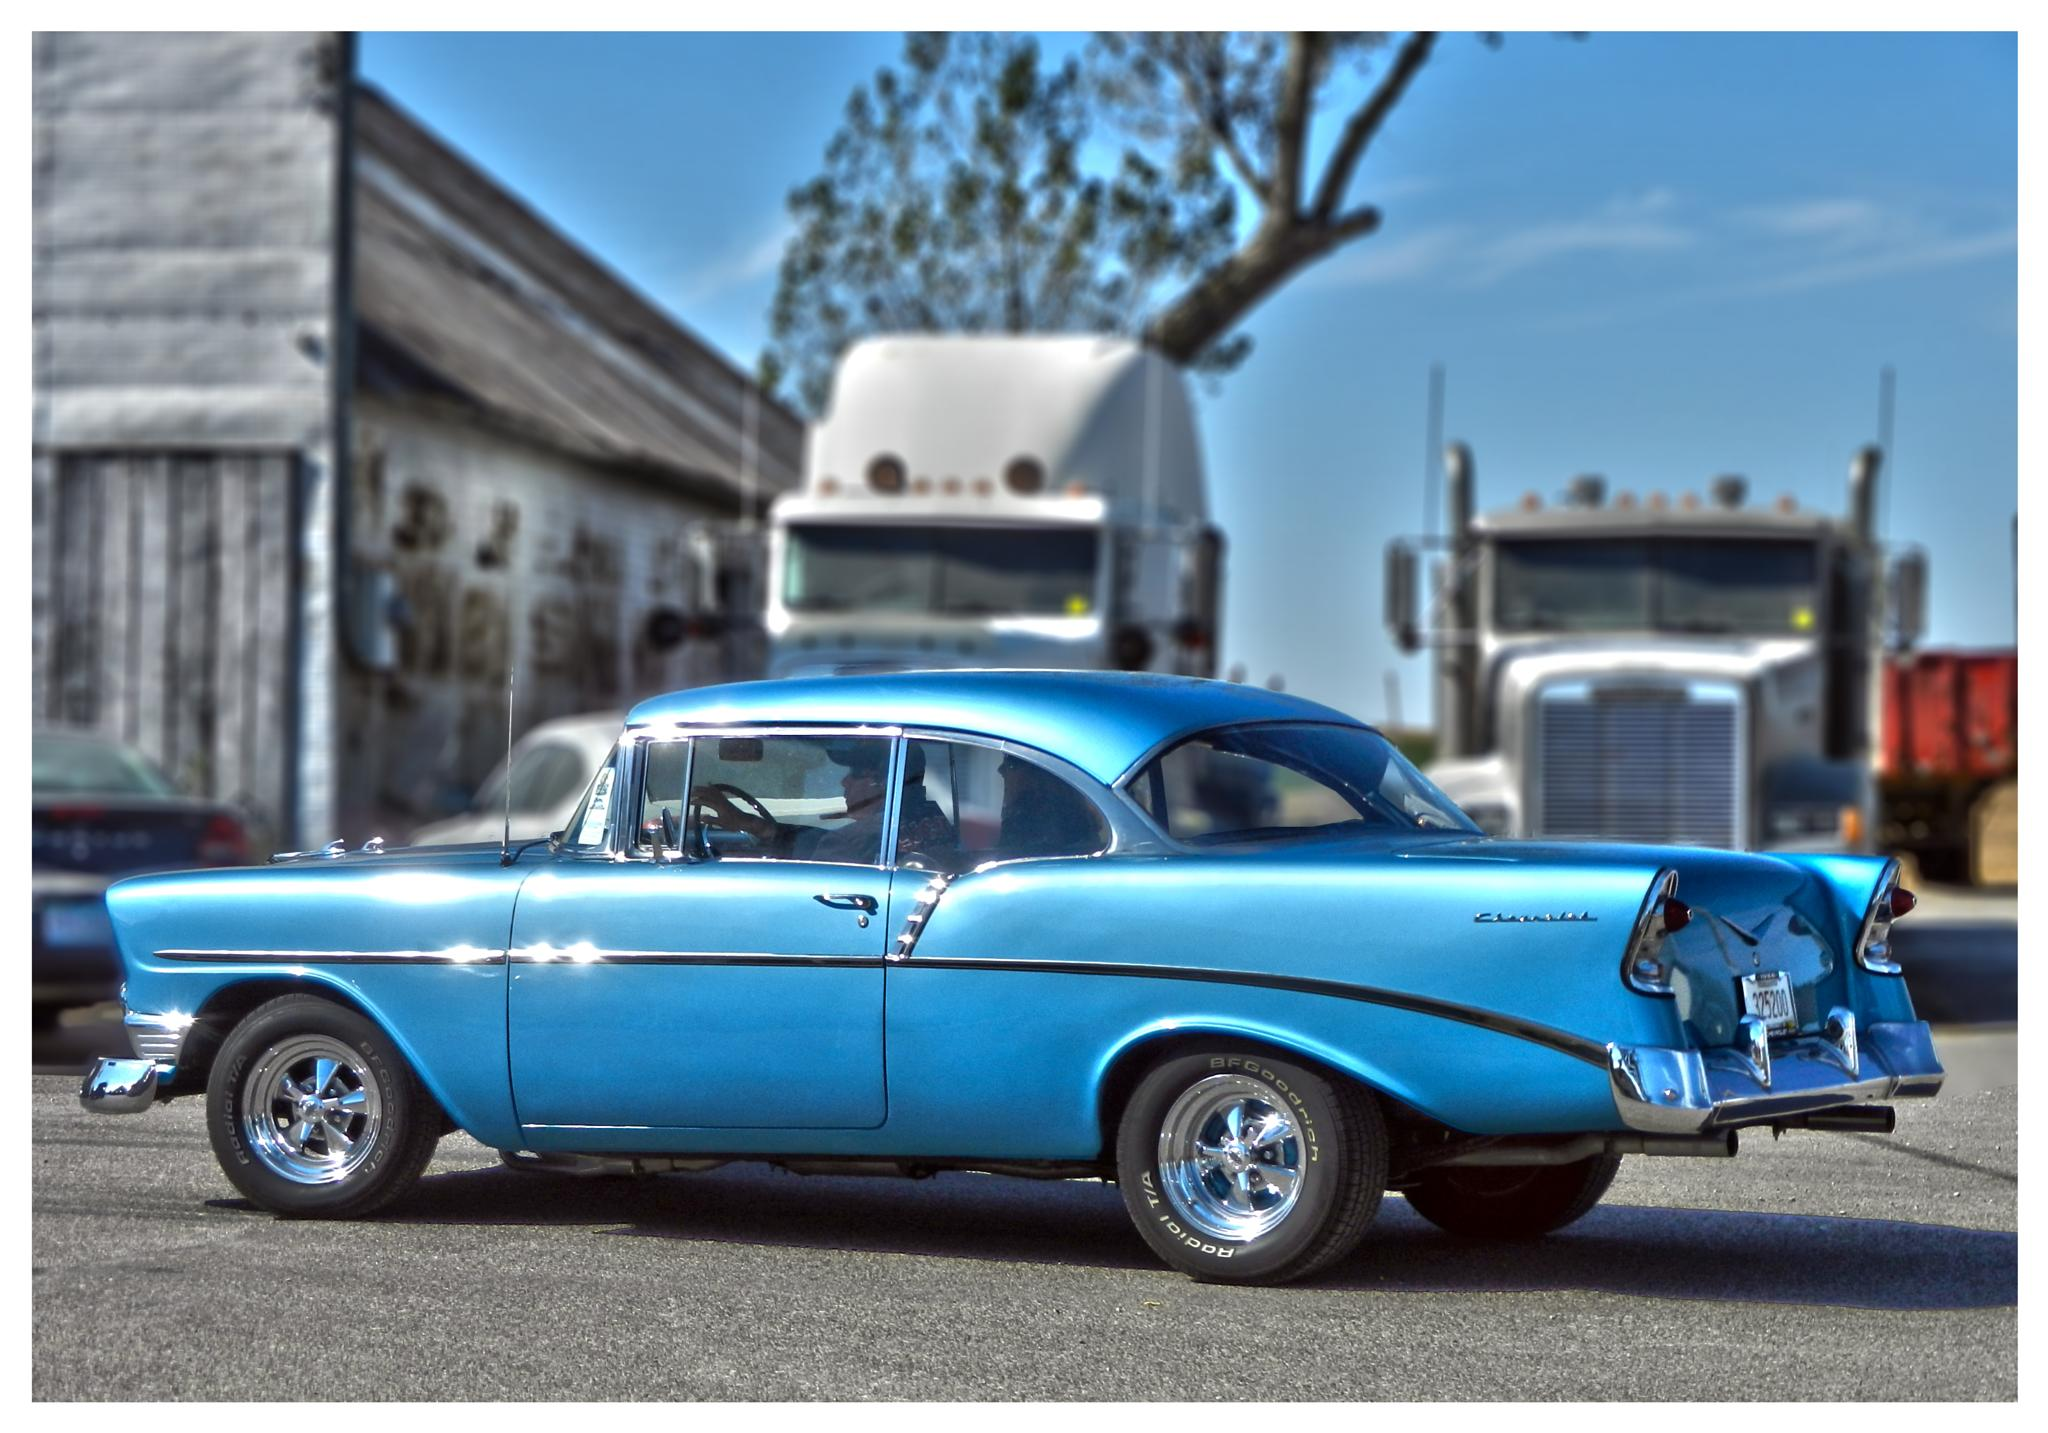 Blue Chevrolet by Linda Persson